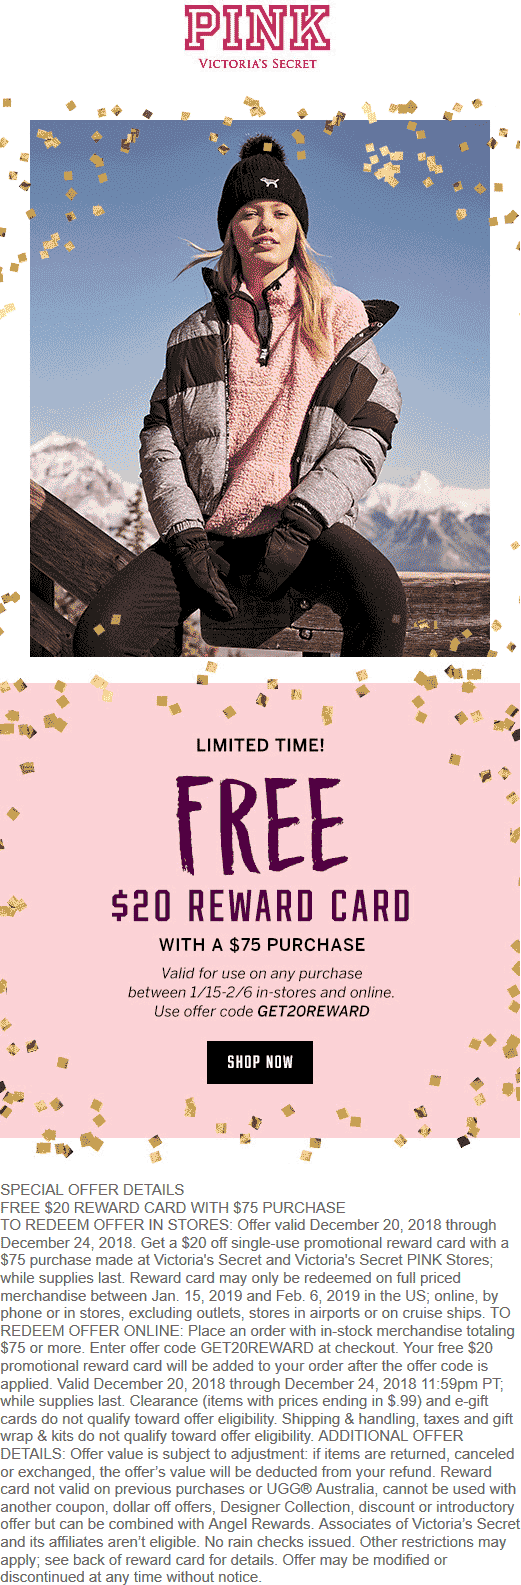 Victorias Secret Coupon July 2020 Free $20 card with $75 spent at Victorias Secret PINK, or online via promo code GET20REWARD